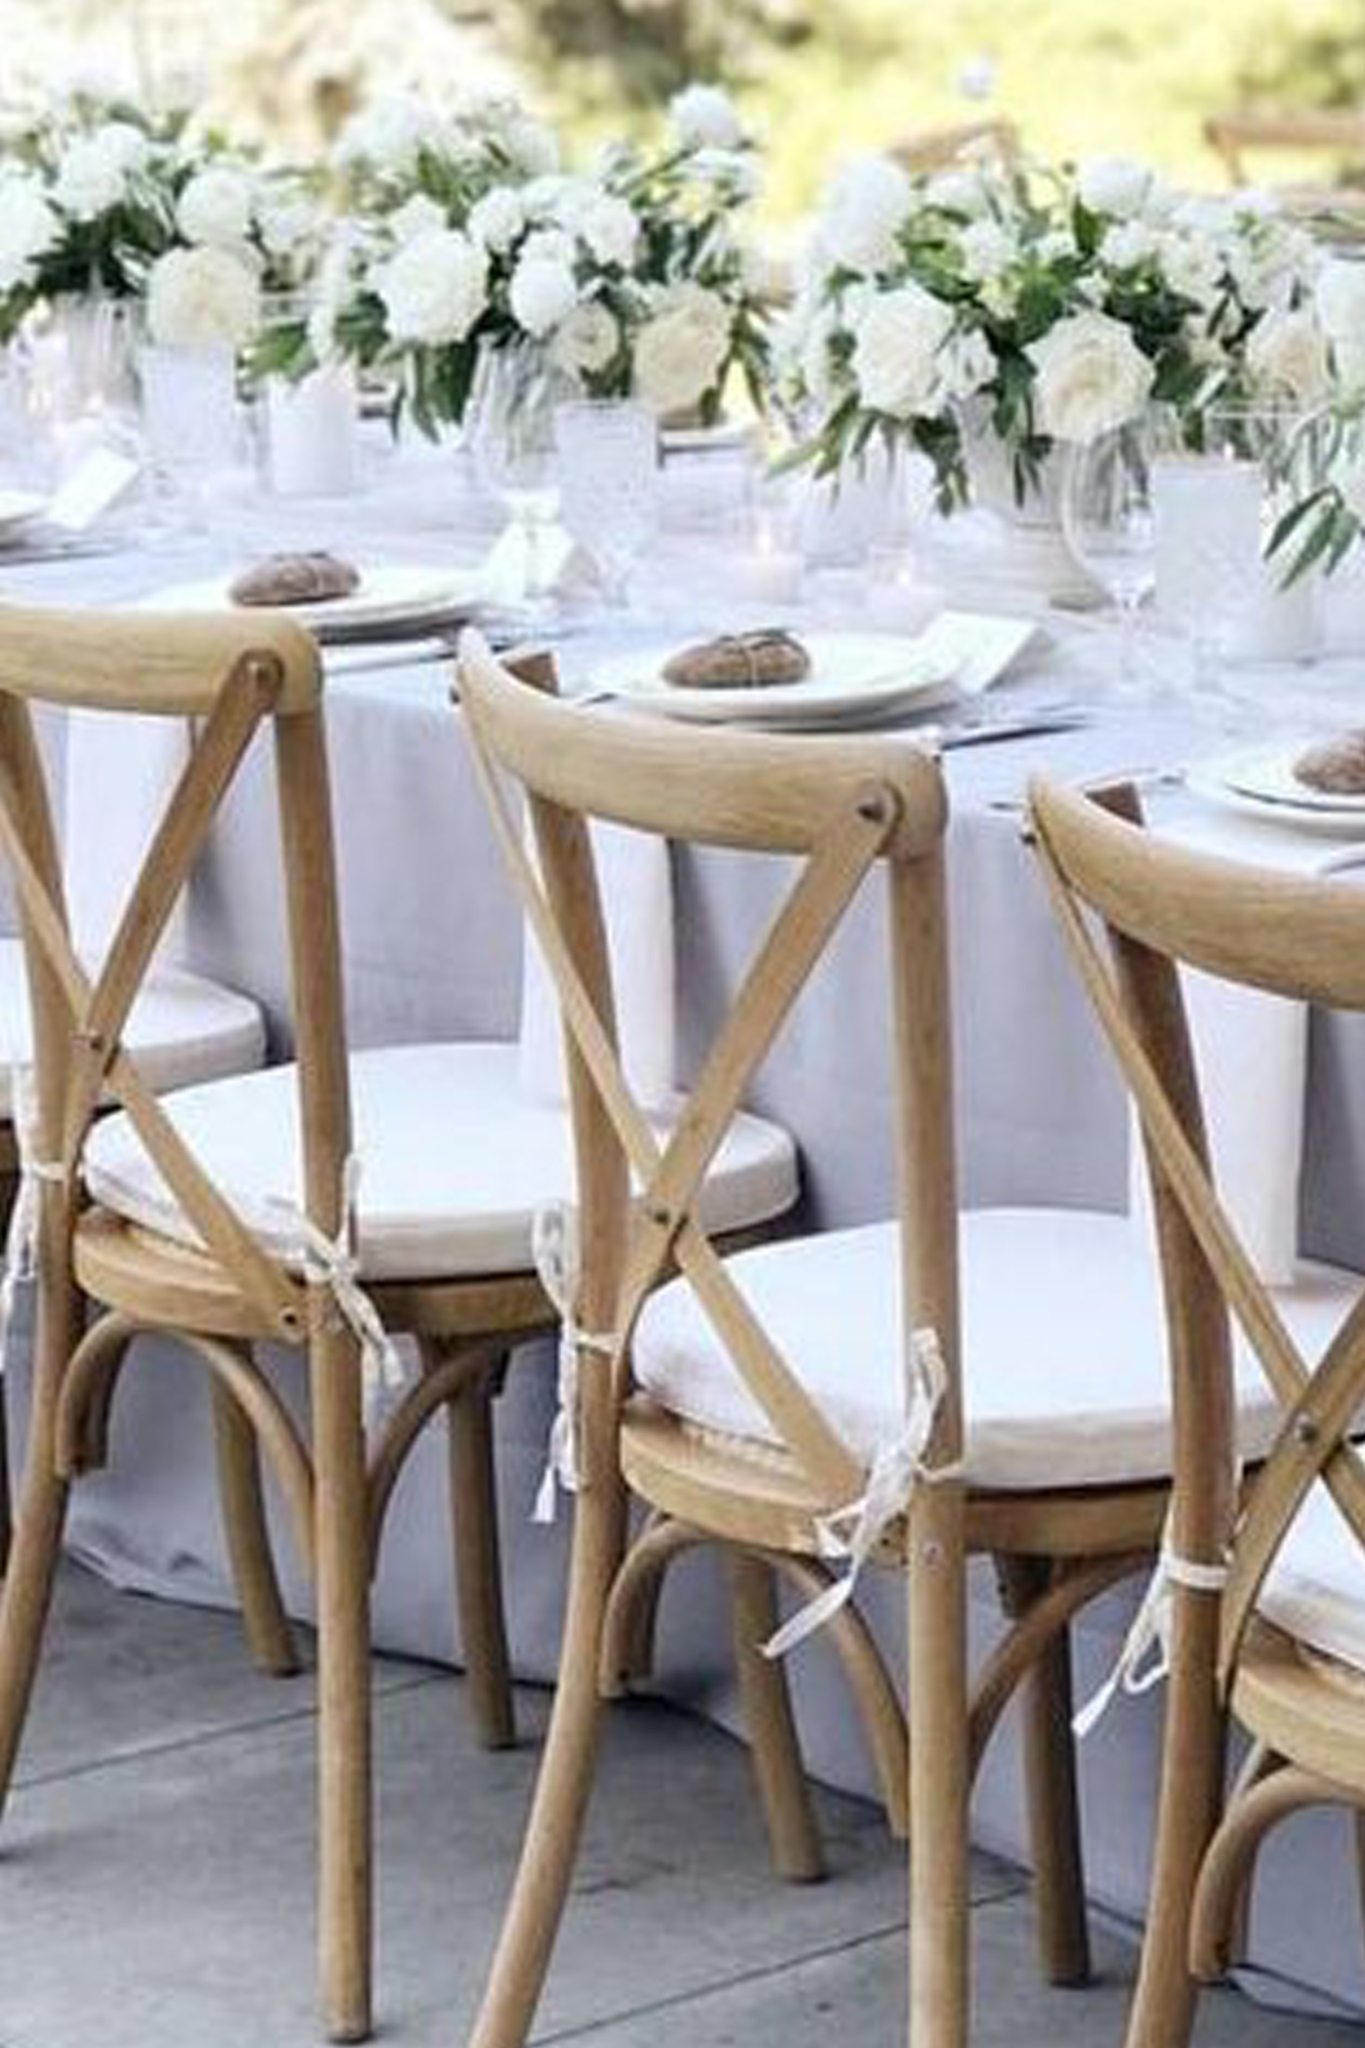 A table setting with three chairs, white flowers and place settings